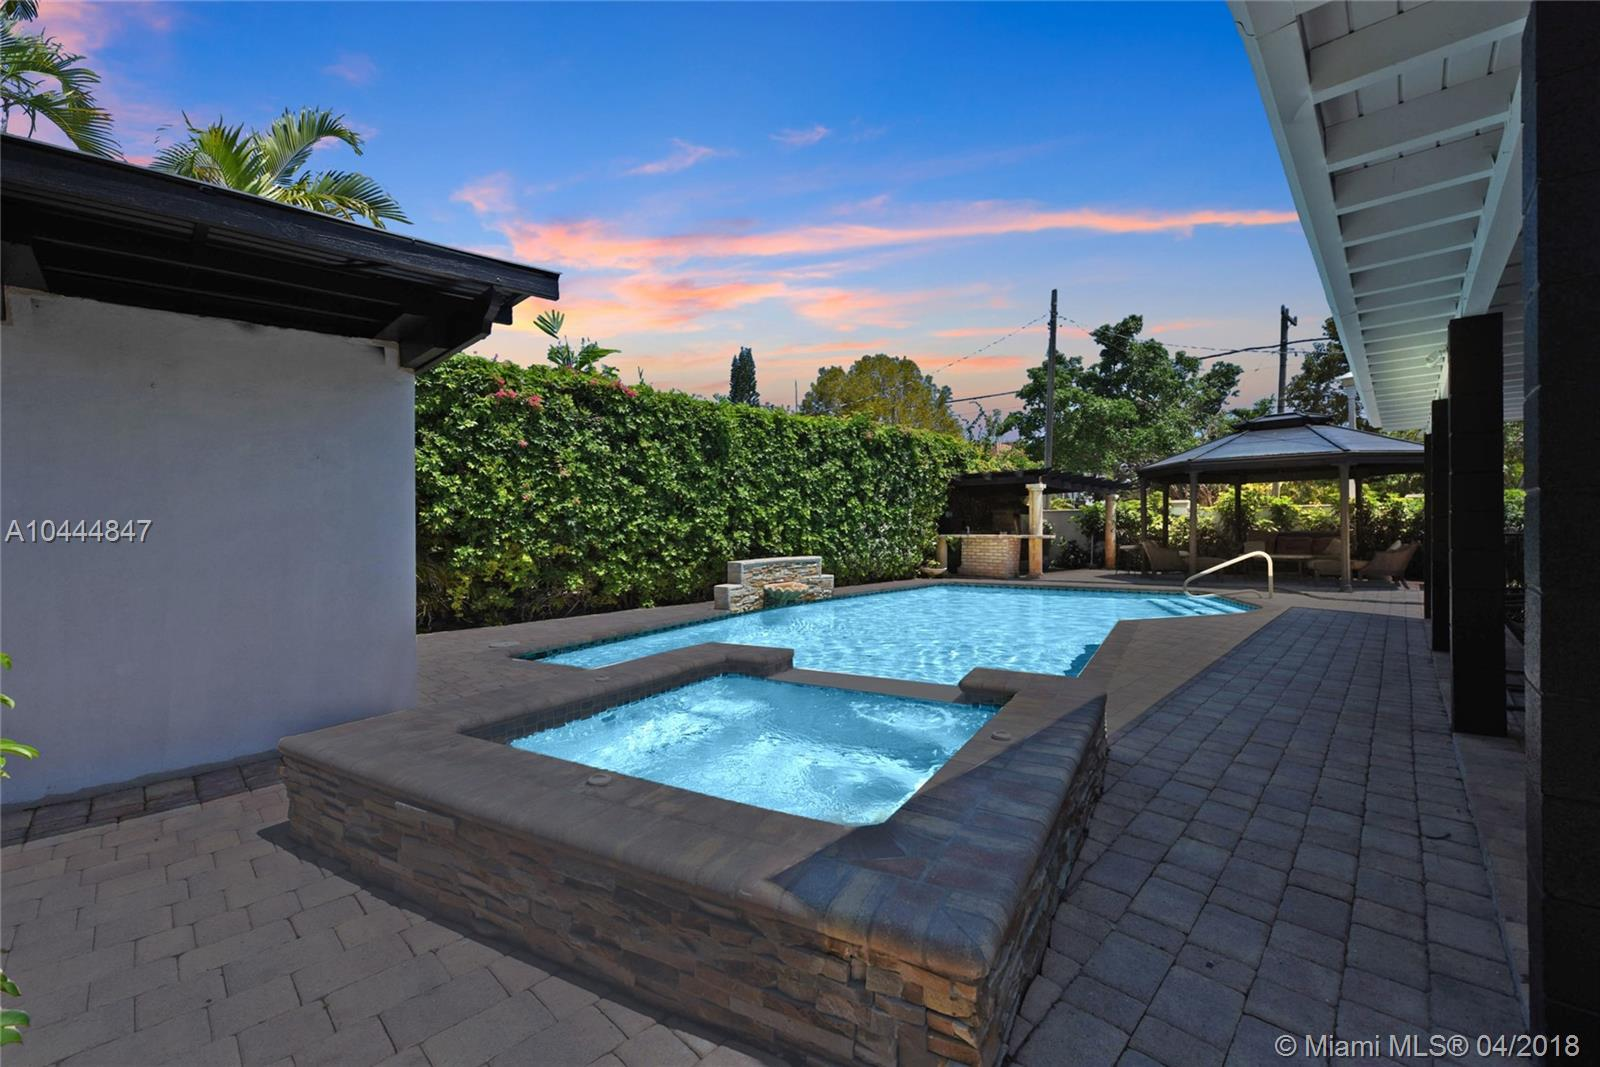 "You will fall in love with this FULLY remodeled, spacious, 5 Bedroom & 6 Bathroom palace located right in the heart of one of South Florida's most sought after prestigious neighborhoods: ""The Roads""! Large Chef's kitchen, Built-in breakfast area, Built-in Sound system, Electric Fireplace, & Extra large island are perfect for entertaining all of your friends and family, while overlooking the tropical oasis pool area. No expense spared in this beauty that is perfect for a growing family looking to work and play just step from Brickell, Downtown, Design District, Coconut Grove, Midtown, Coral Gables, Key Biscayne, & Miami Beach. The large corner lot commands attention at one of the most desirable intersections in the neighborhood. New Metal Roof, New Impact windows & Doors, etc. A MUST See!"